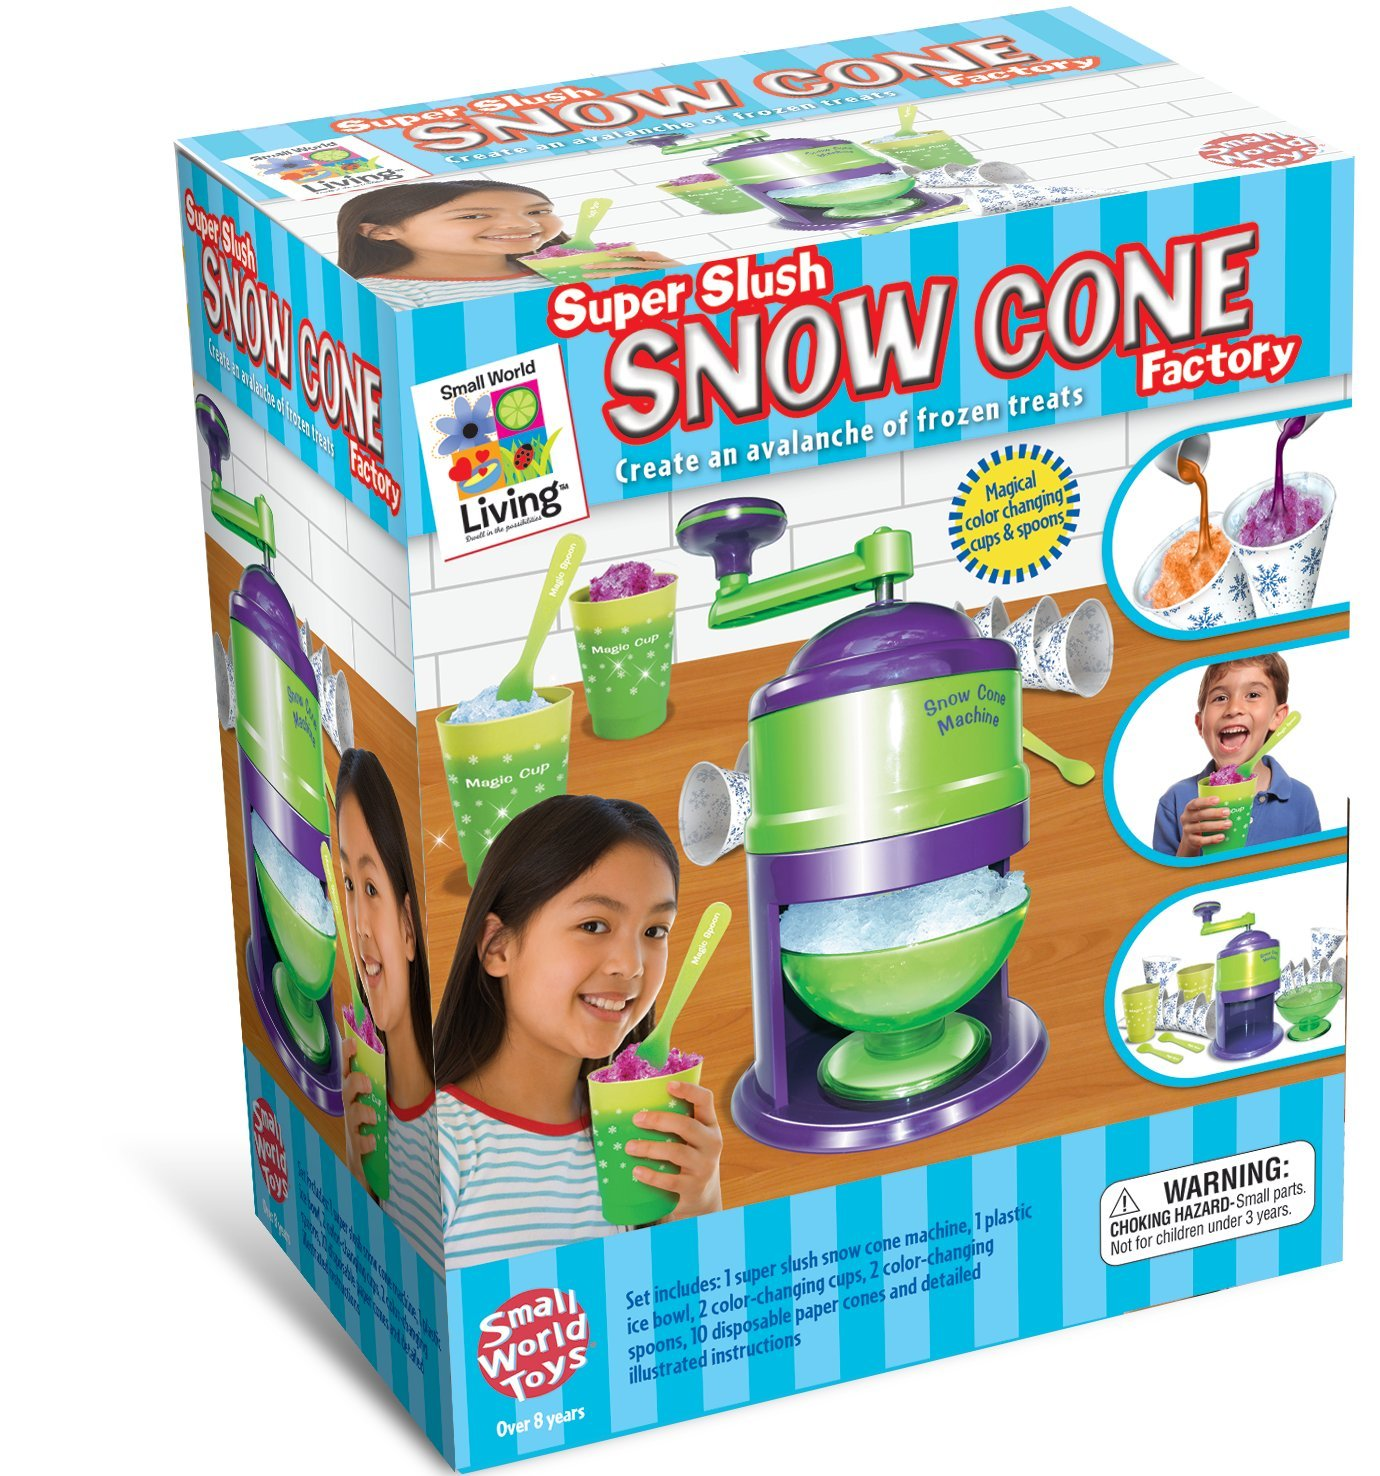 Small World Toys Living - Super Slush Snow Cone Factory by Small World Toys